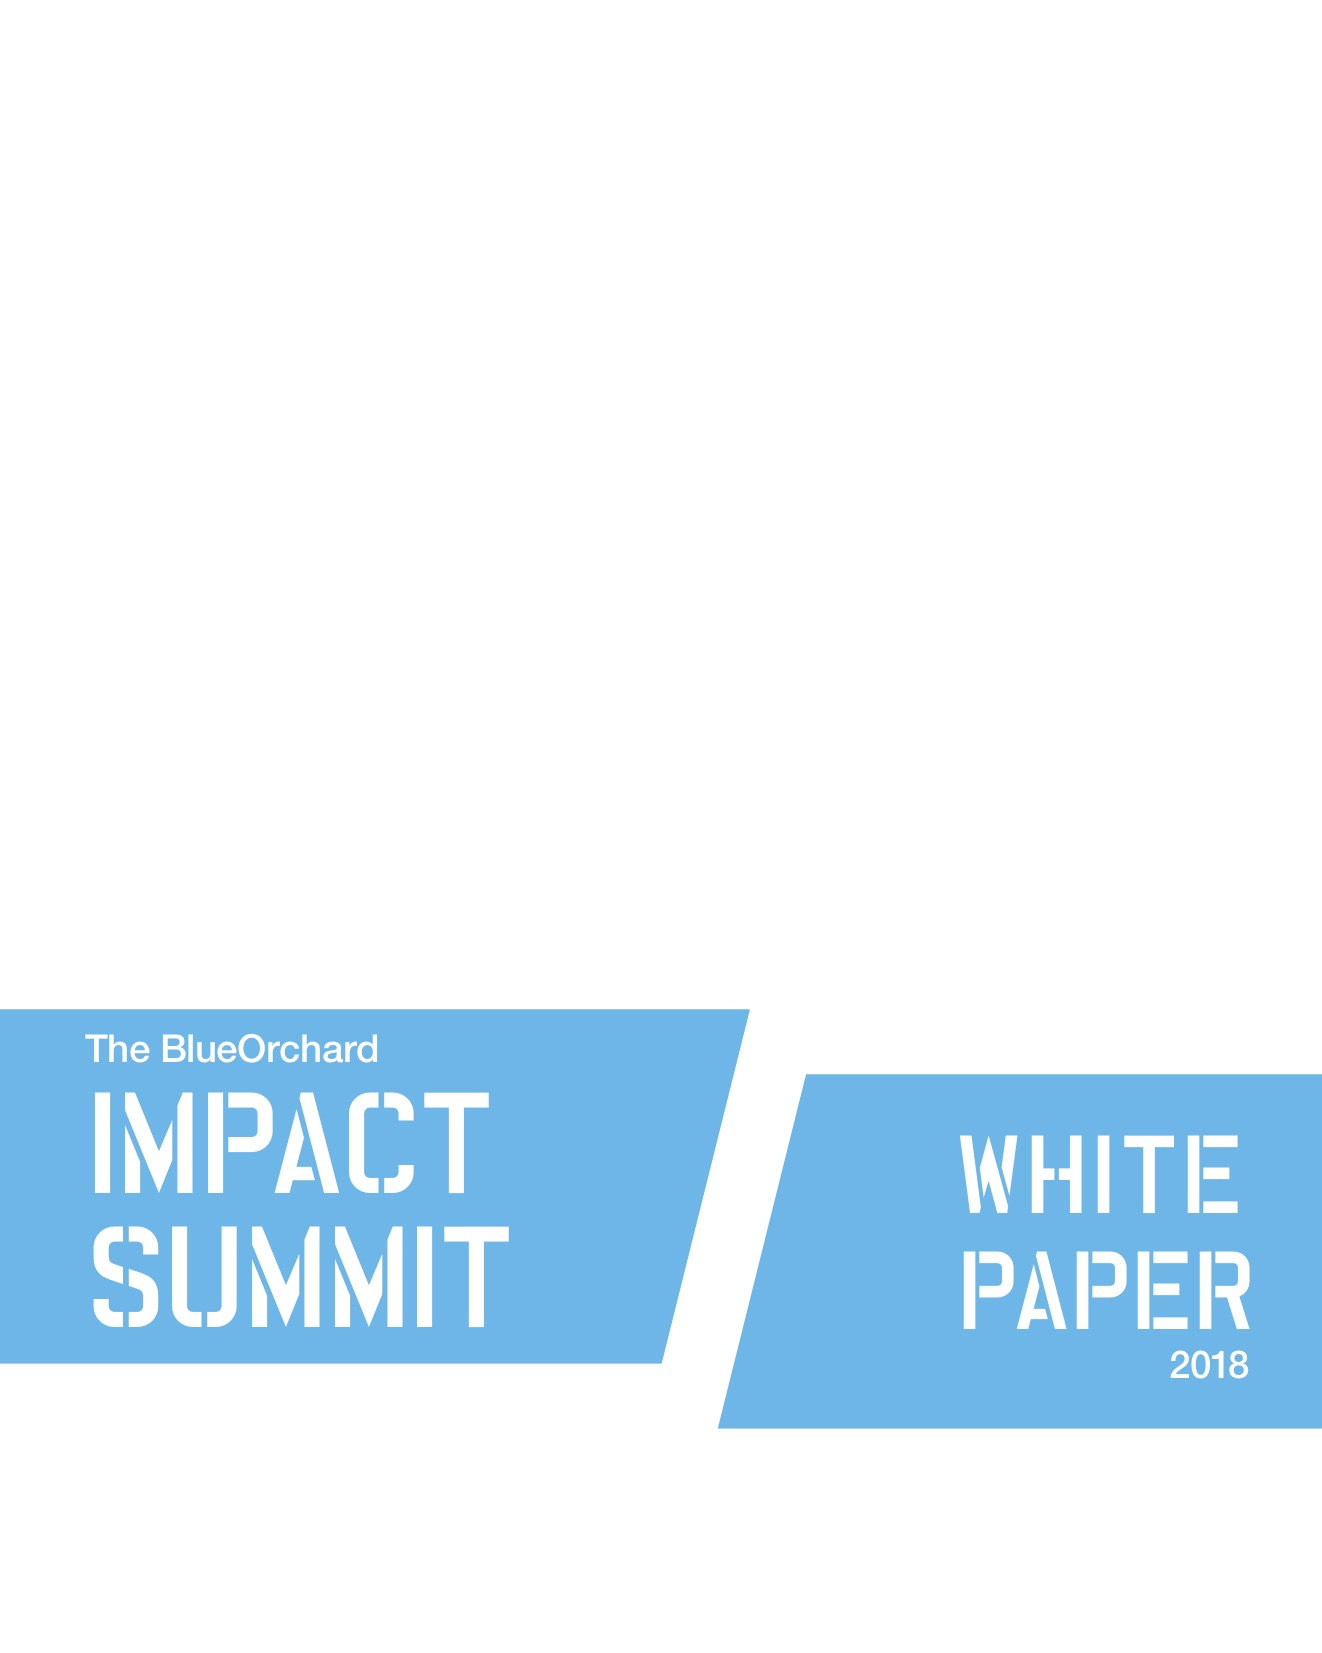 The BlueOrchard Impact Summit White Paper